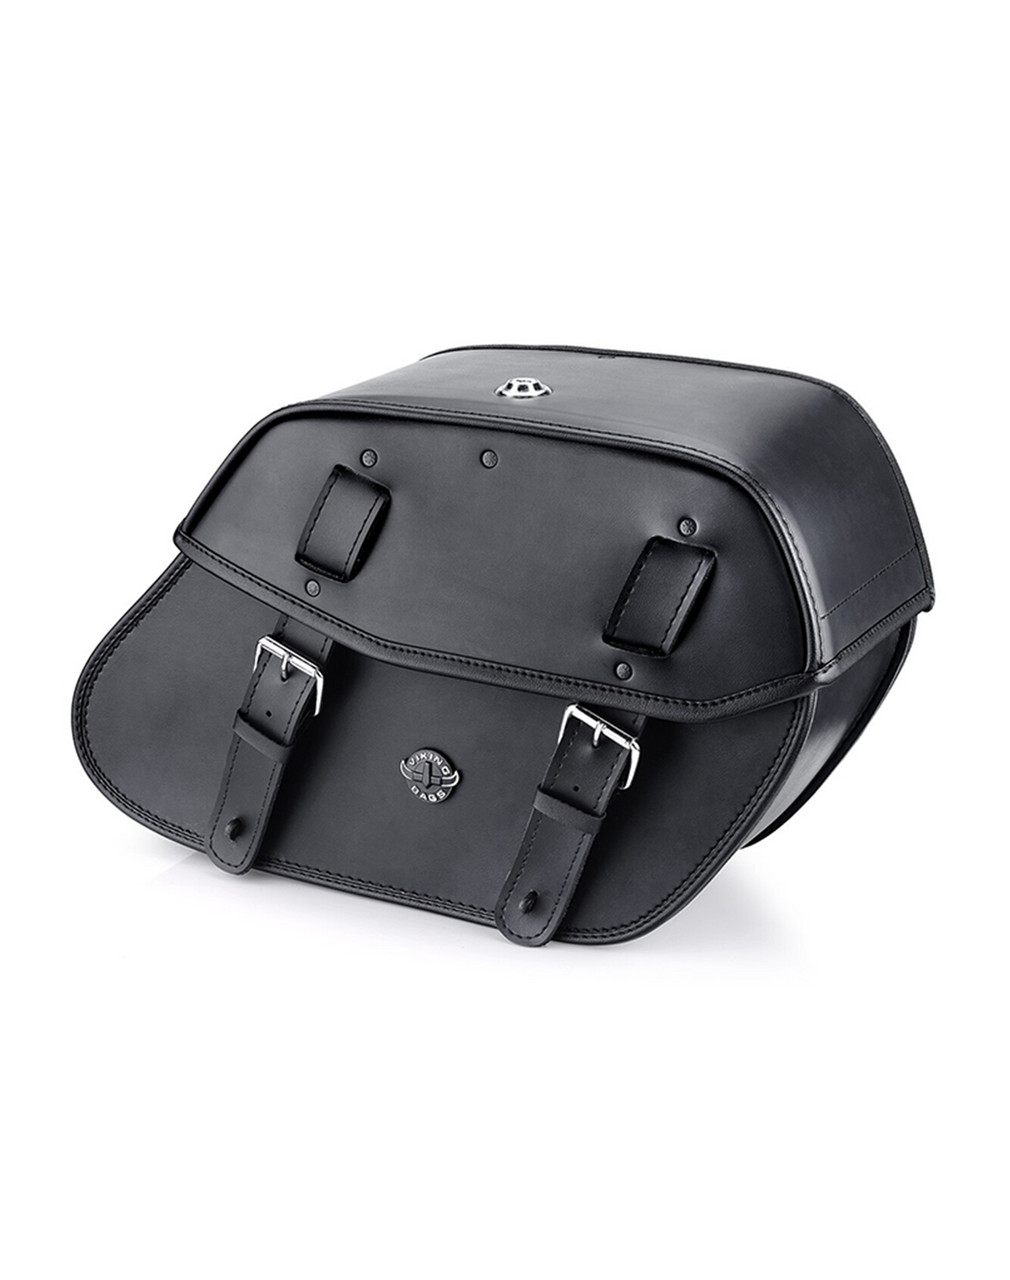 Viking Odin Large Motorcycle Saddlebags For Harley Softail Custom FXSTC Main View